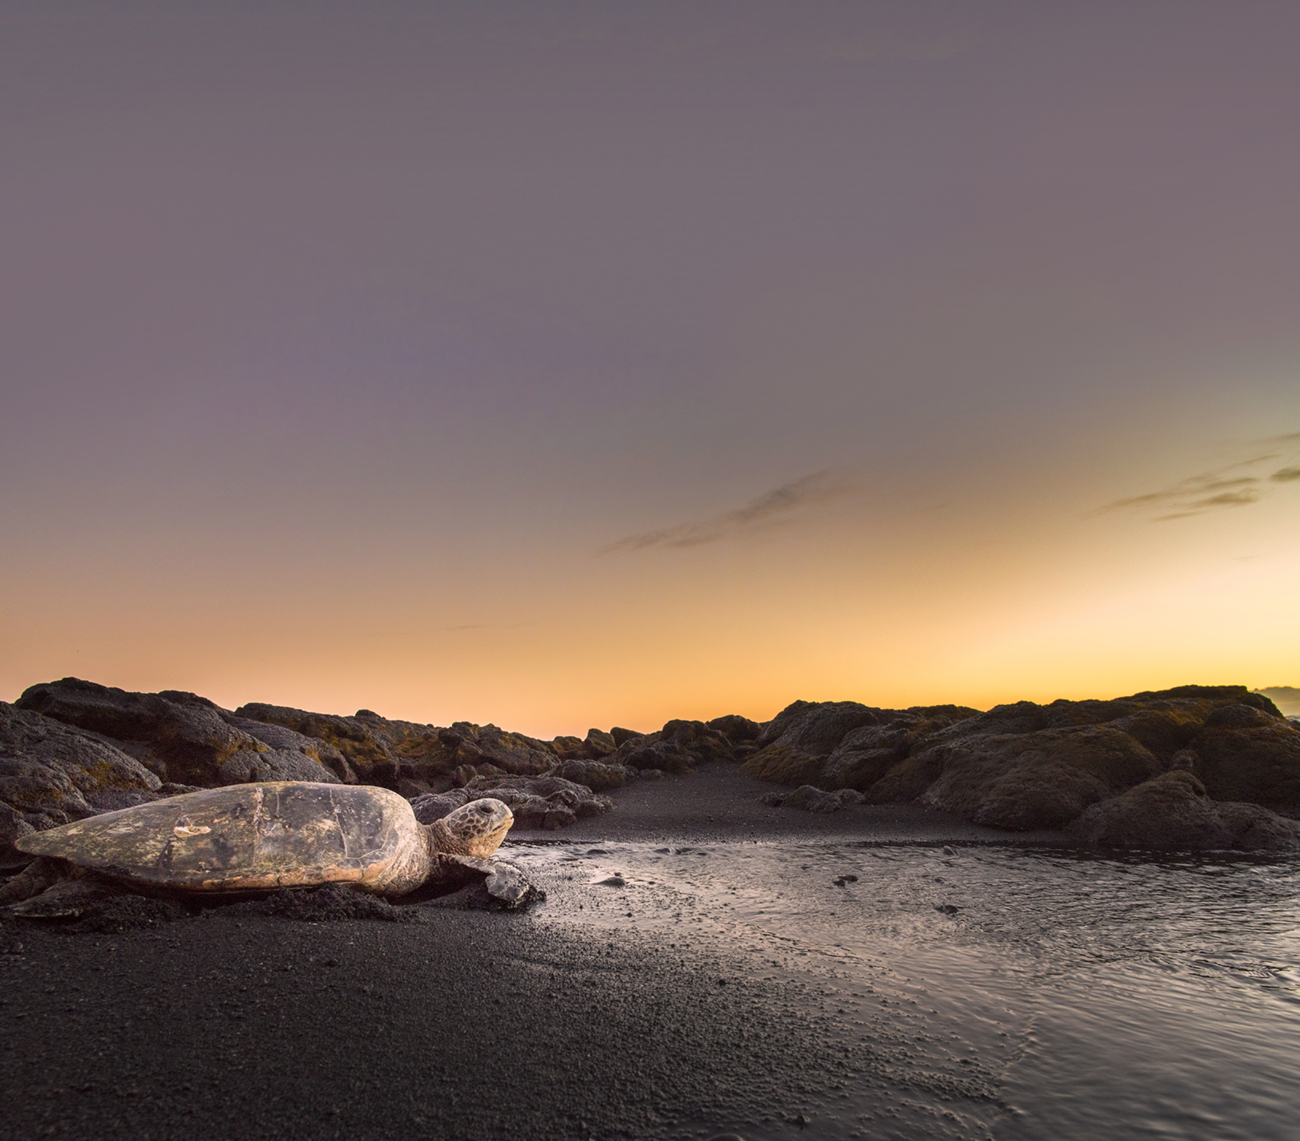 Sea Turtle at Black Sands Beach on a magical morning sunrise  // Photo credit: Carlin Ma